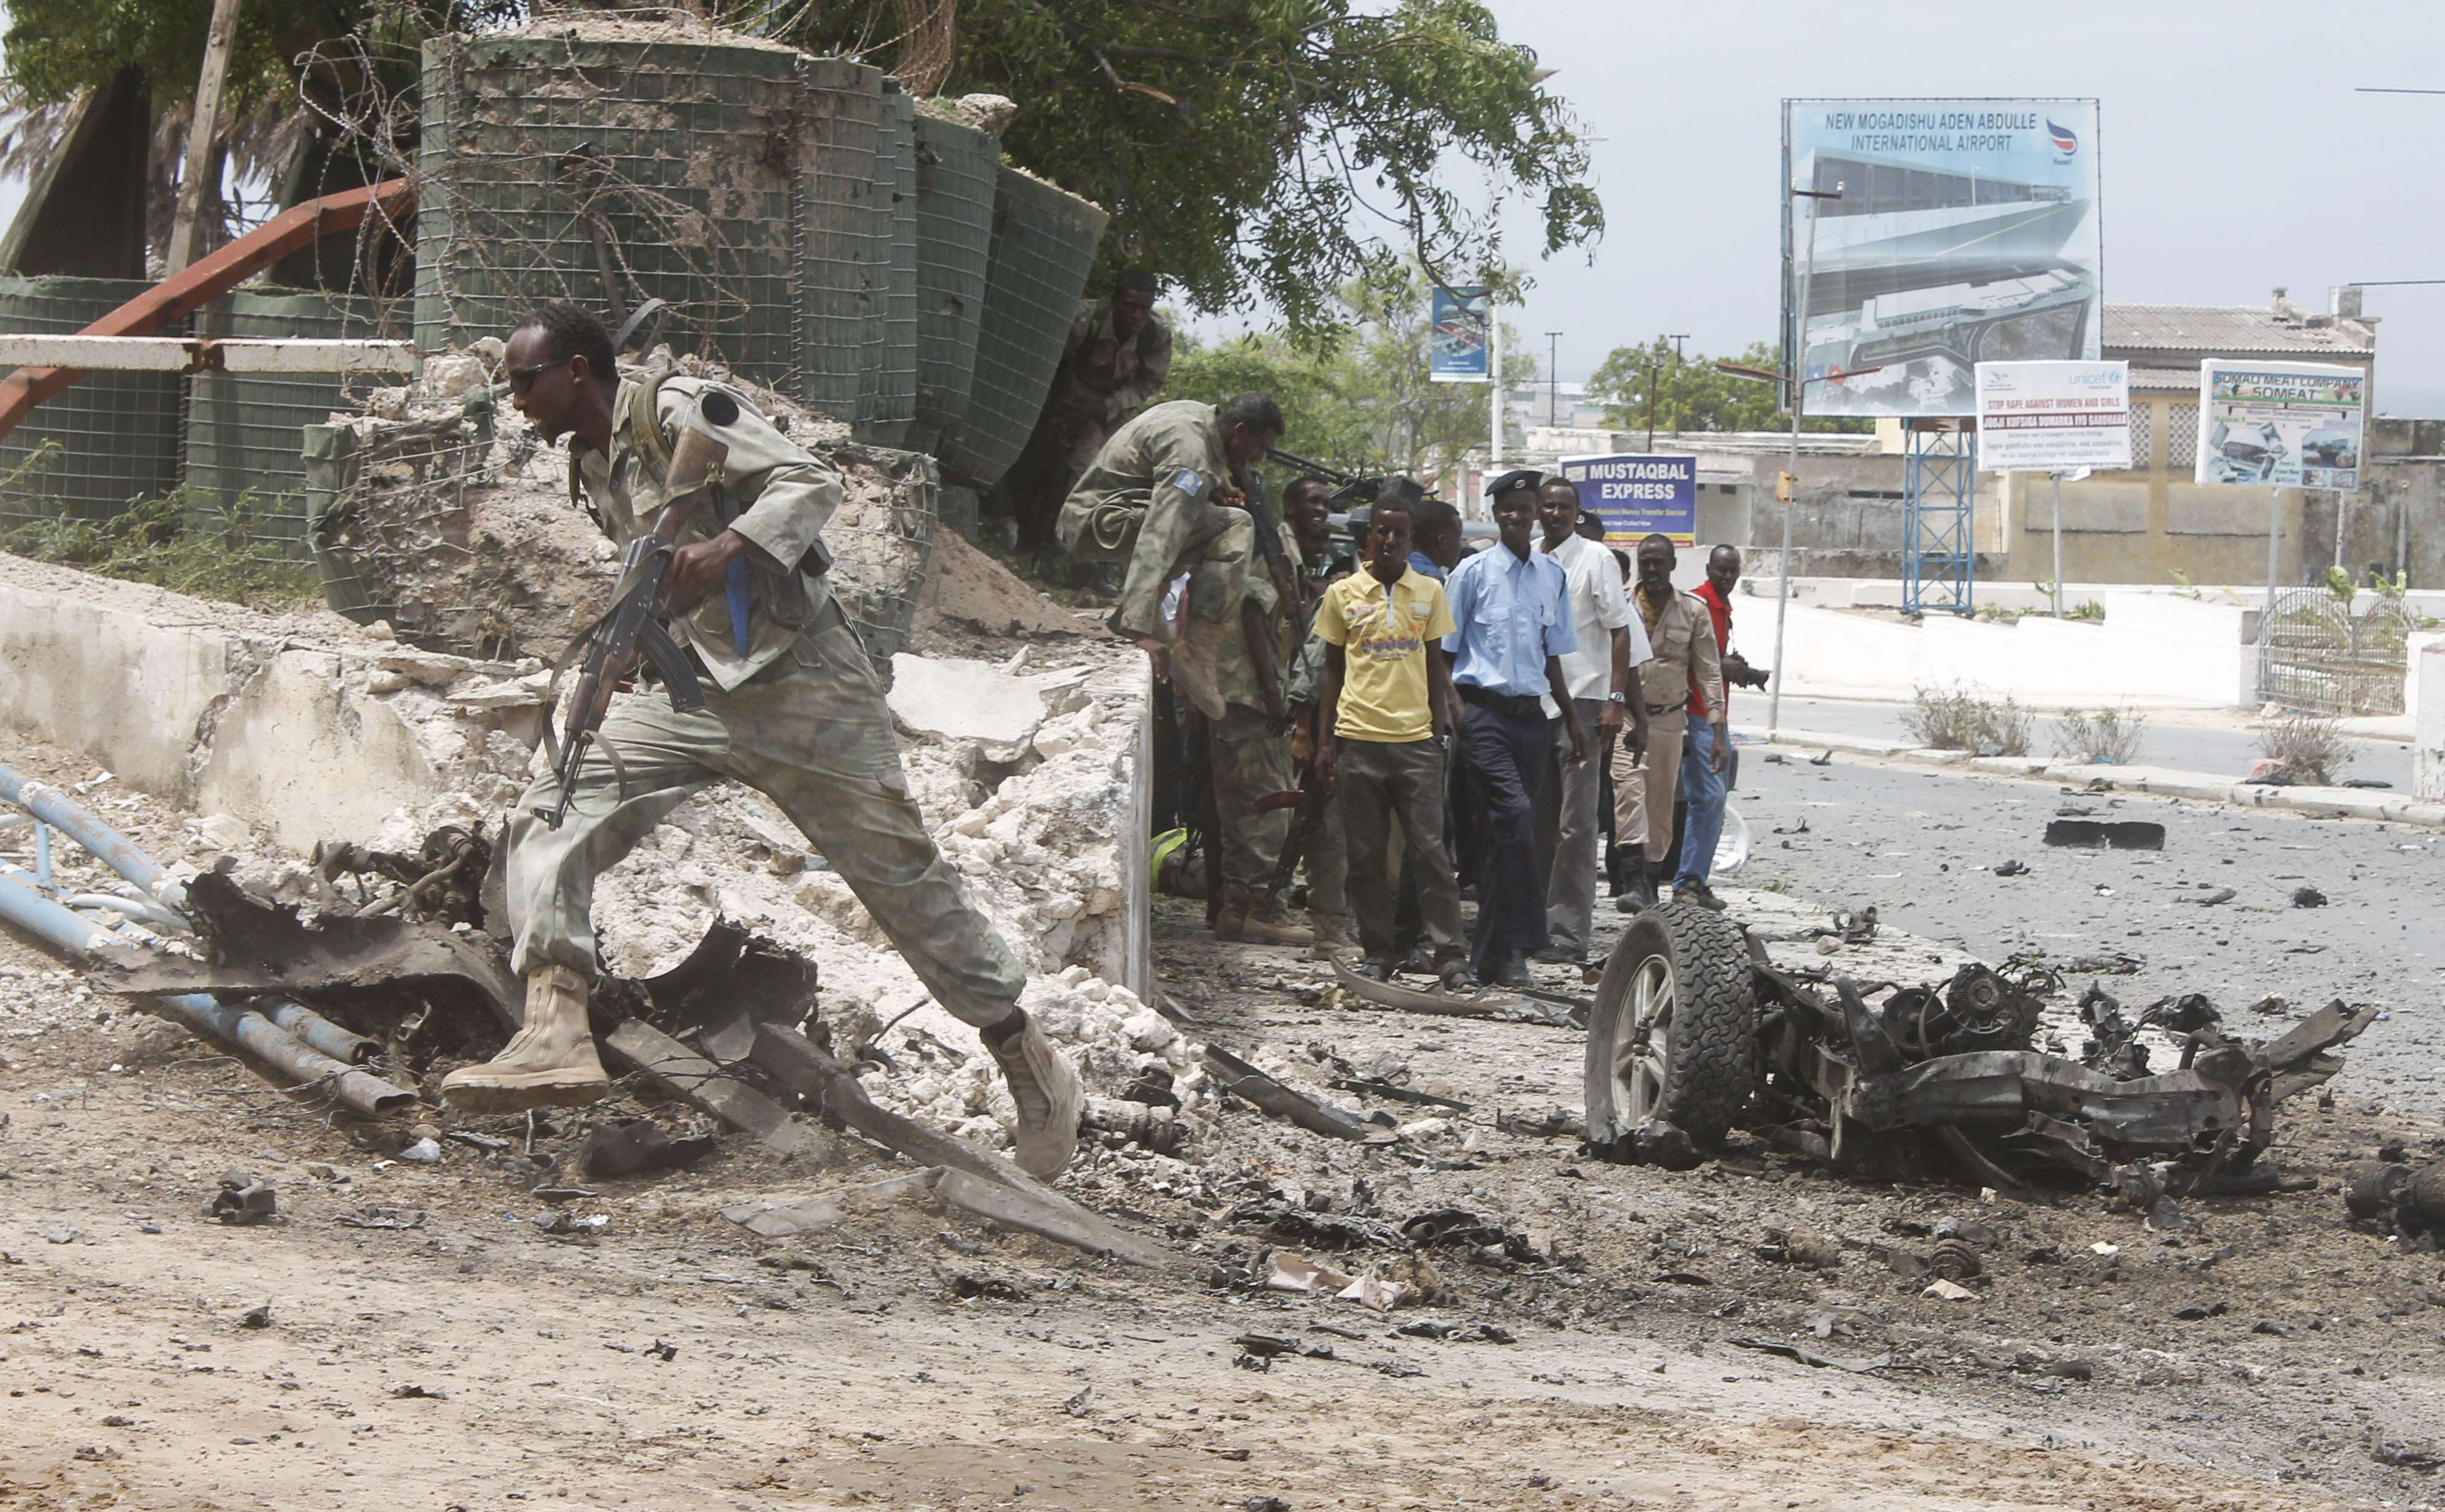 A Somali army soldier runs towards the Somali parliament as other take cover during an attack, in Mogadishu, on May 24, 2014. Somalia's Shebab rebels launched a major attack on the national parliament today, setting off a car bomb and penetrating the building with suicide commandos, leaving at least eight dead, police and witnesses said.   (AFP PHOTO / Mohamed Abdiwahab)